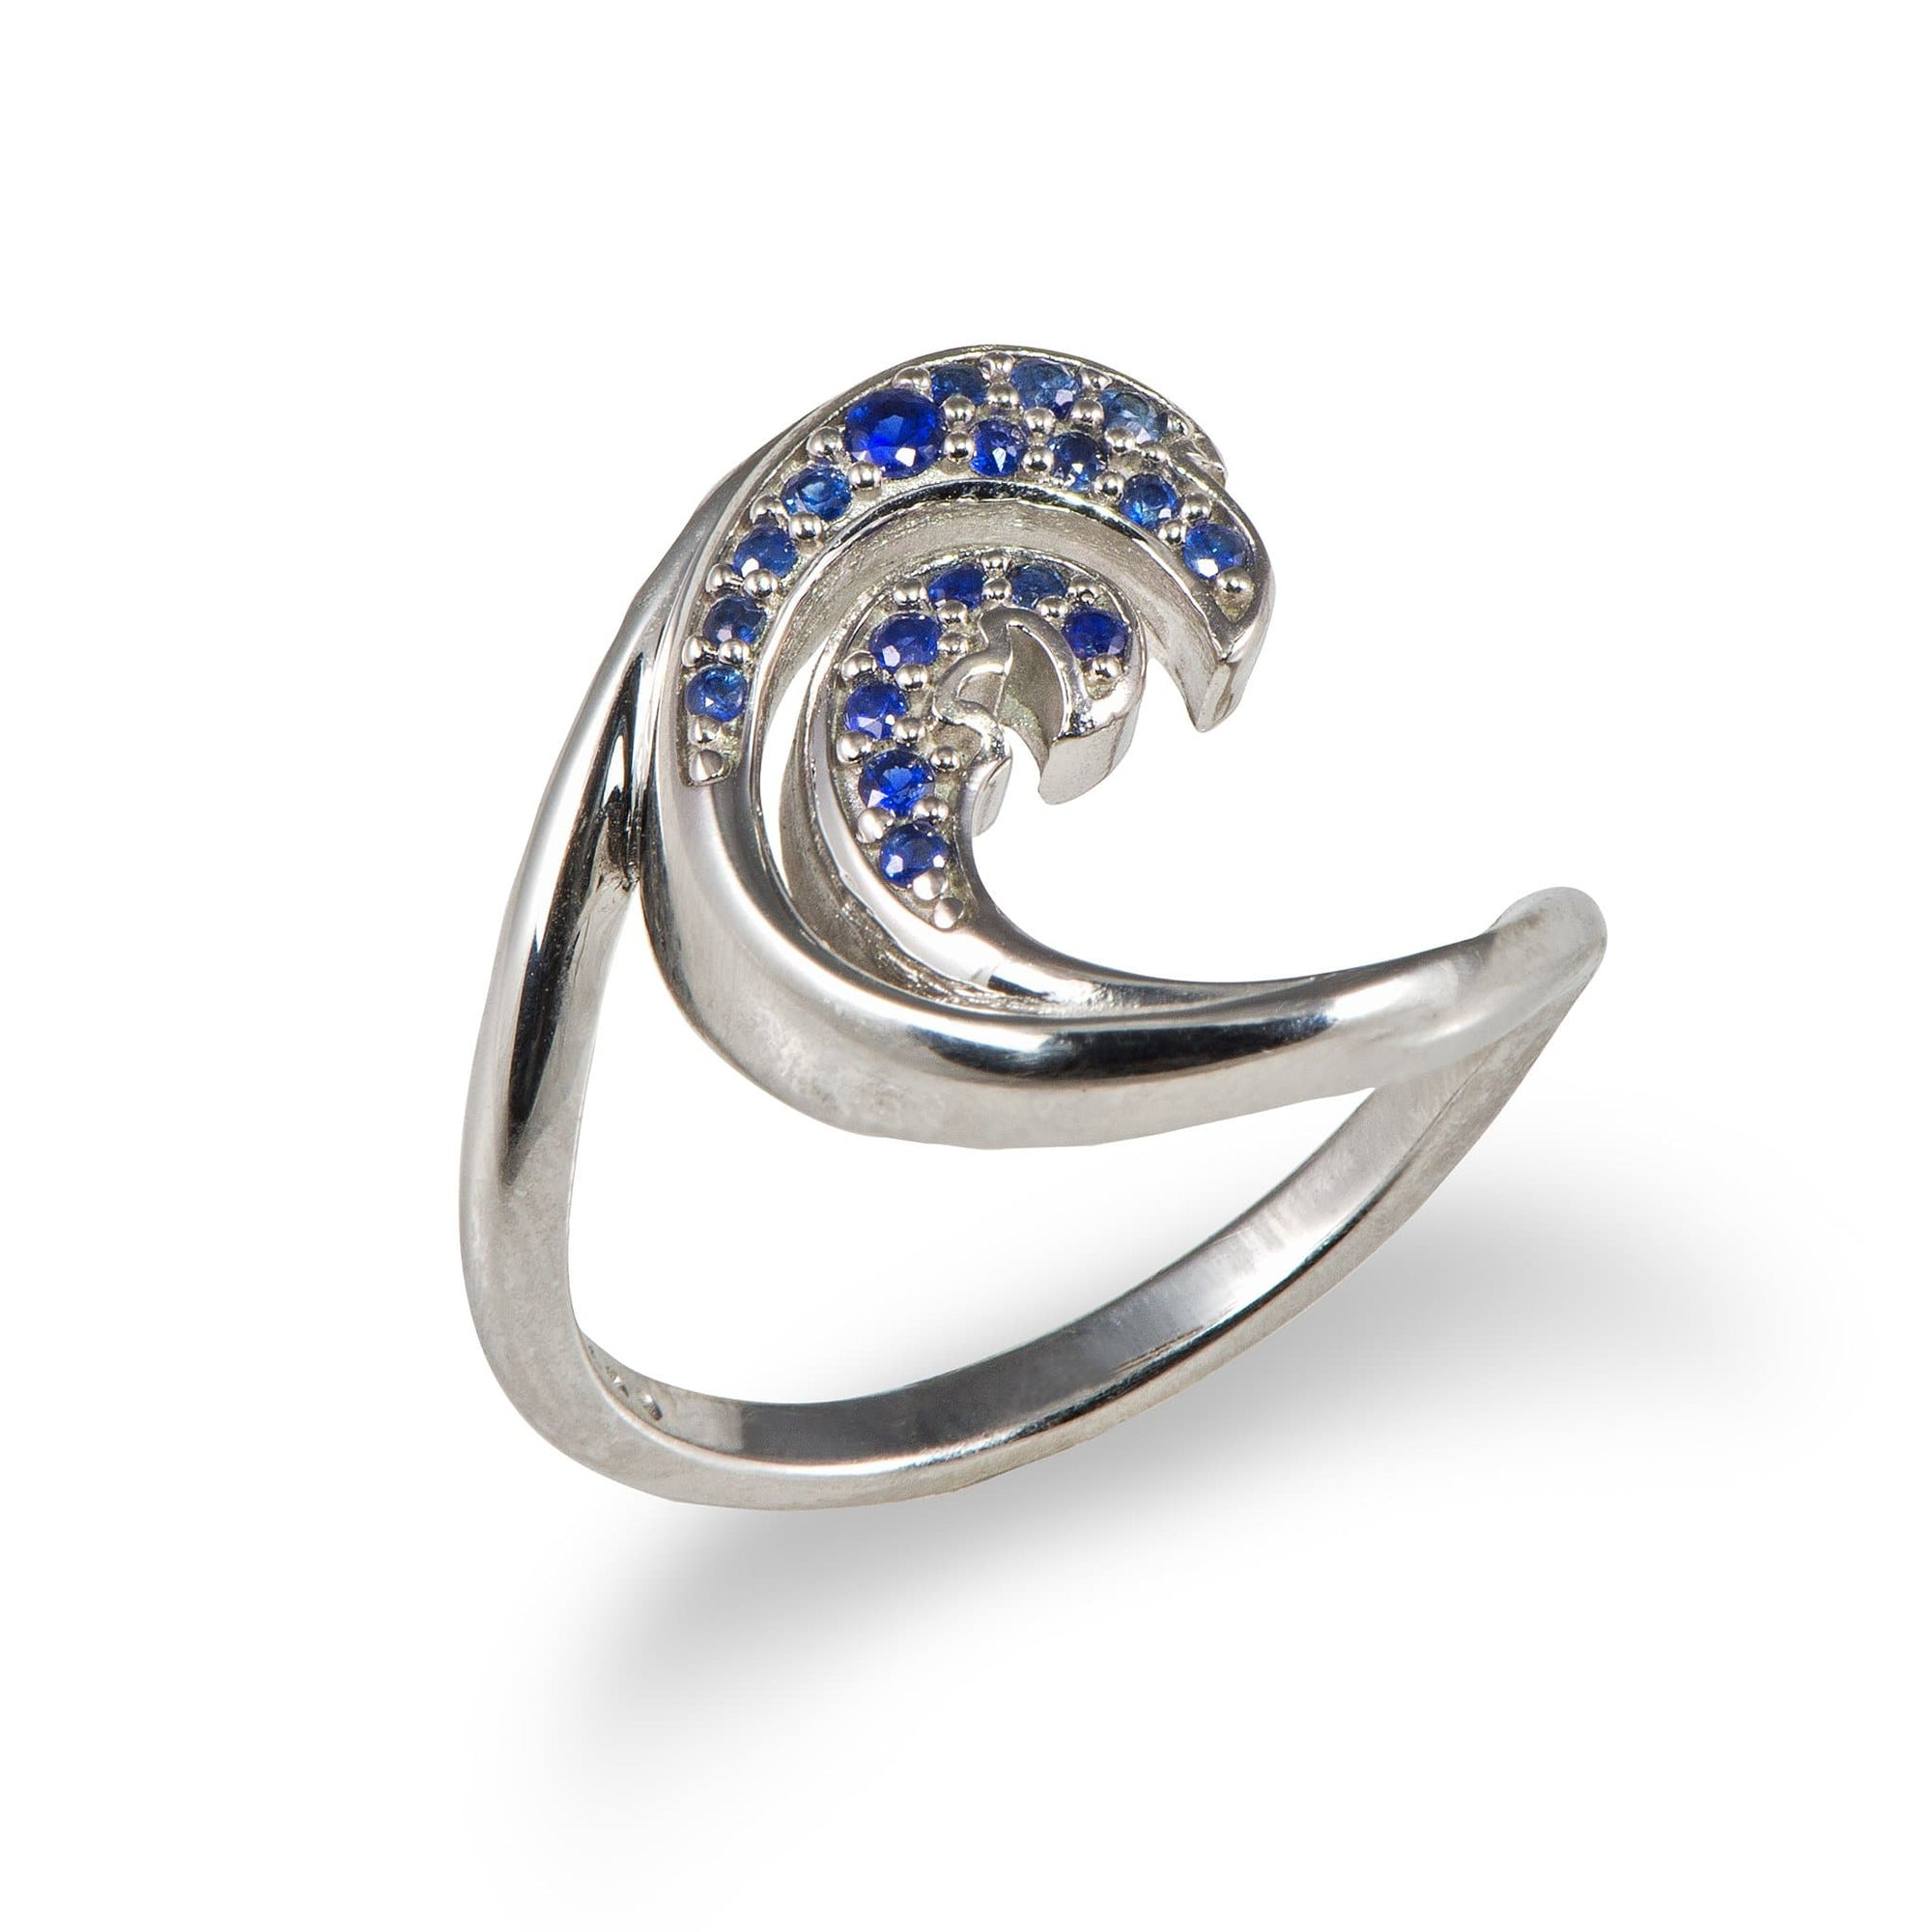 Nalu Ring in White Gold with Blue Sapphires - 15mm - Maui Divers Jewelry